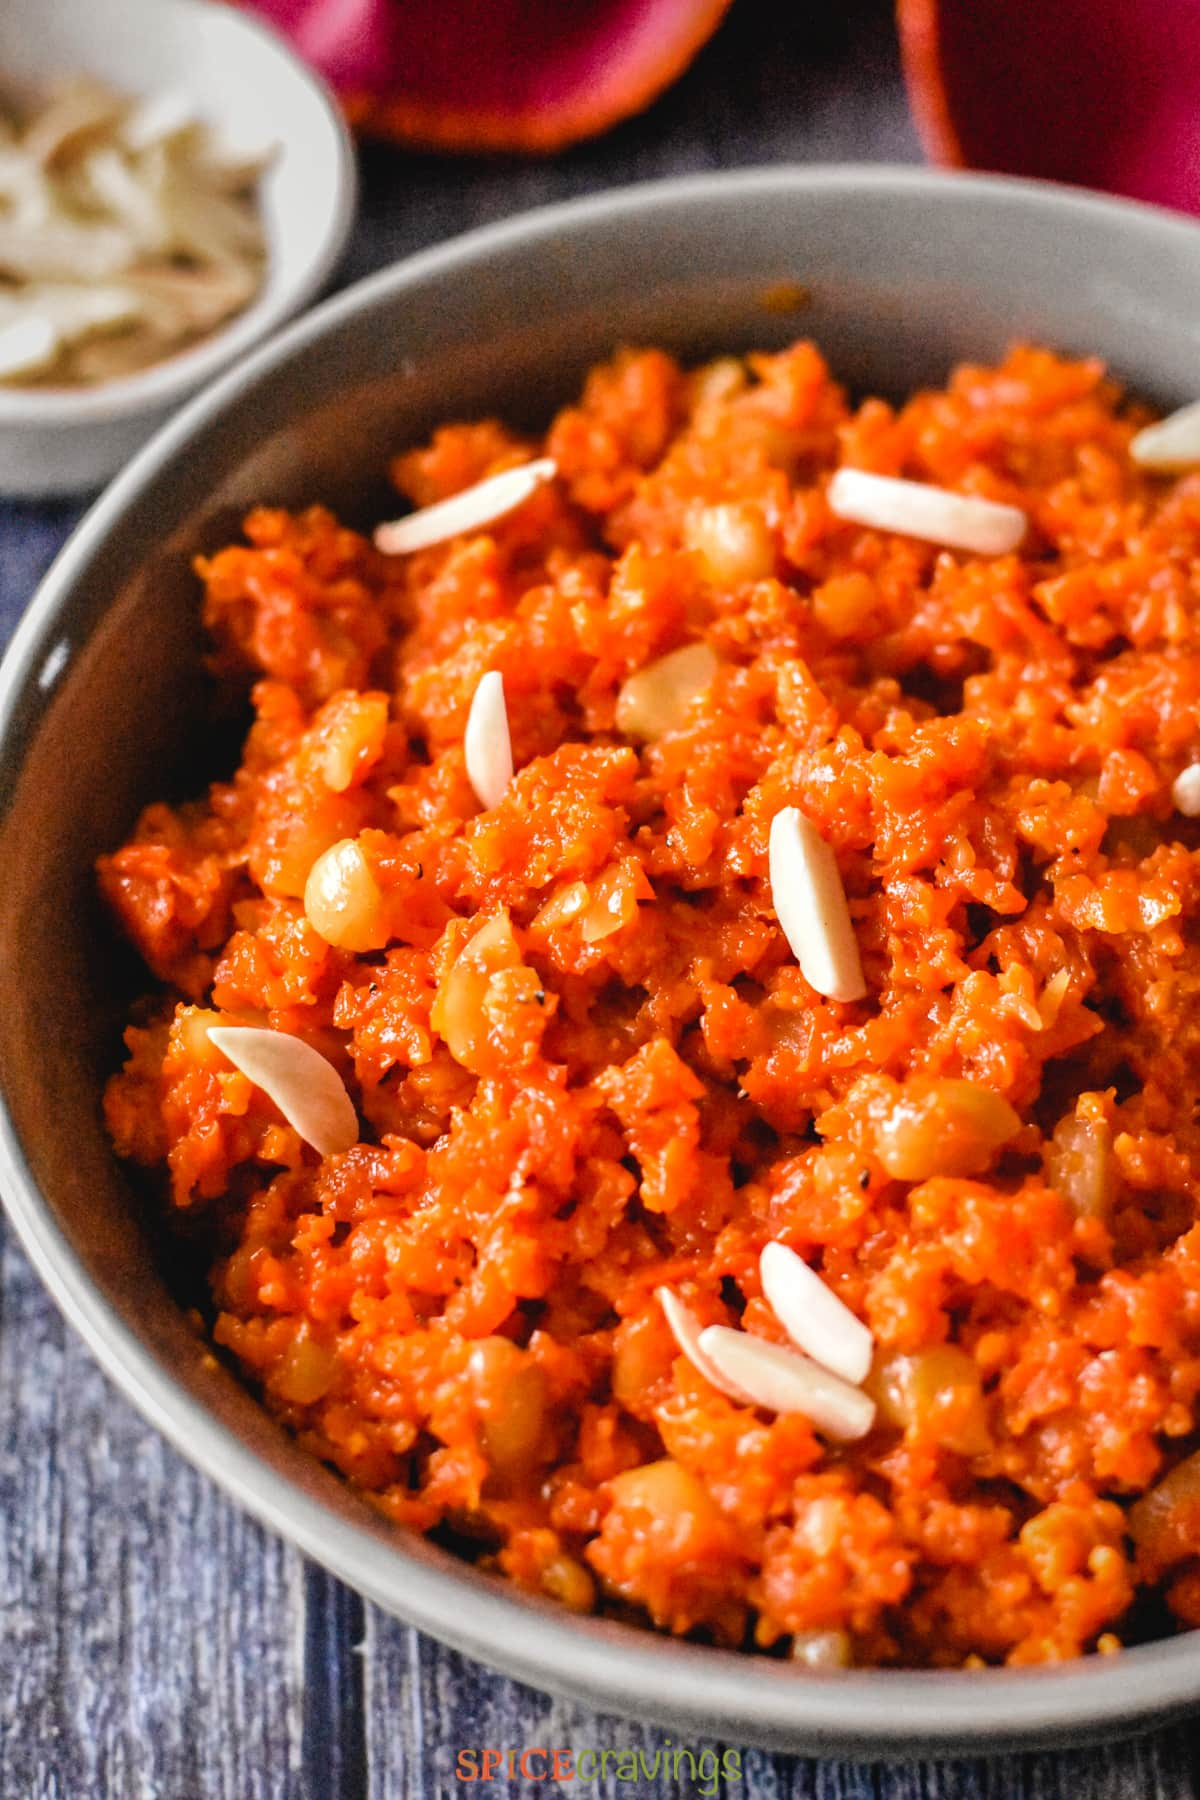 Grated carrots cooked with milk to make Carrot Halwa, served with slivered almonds